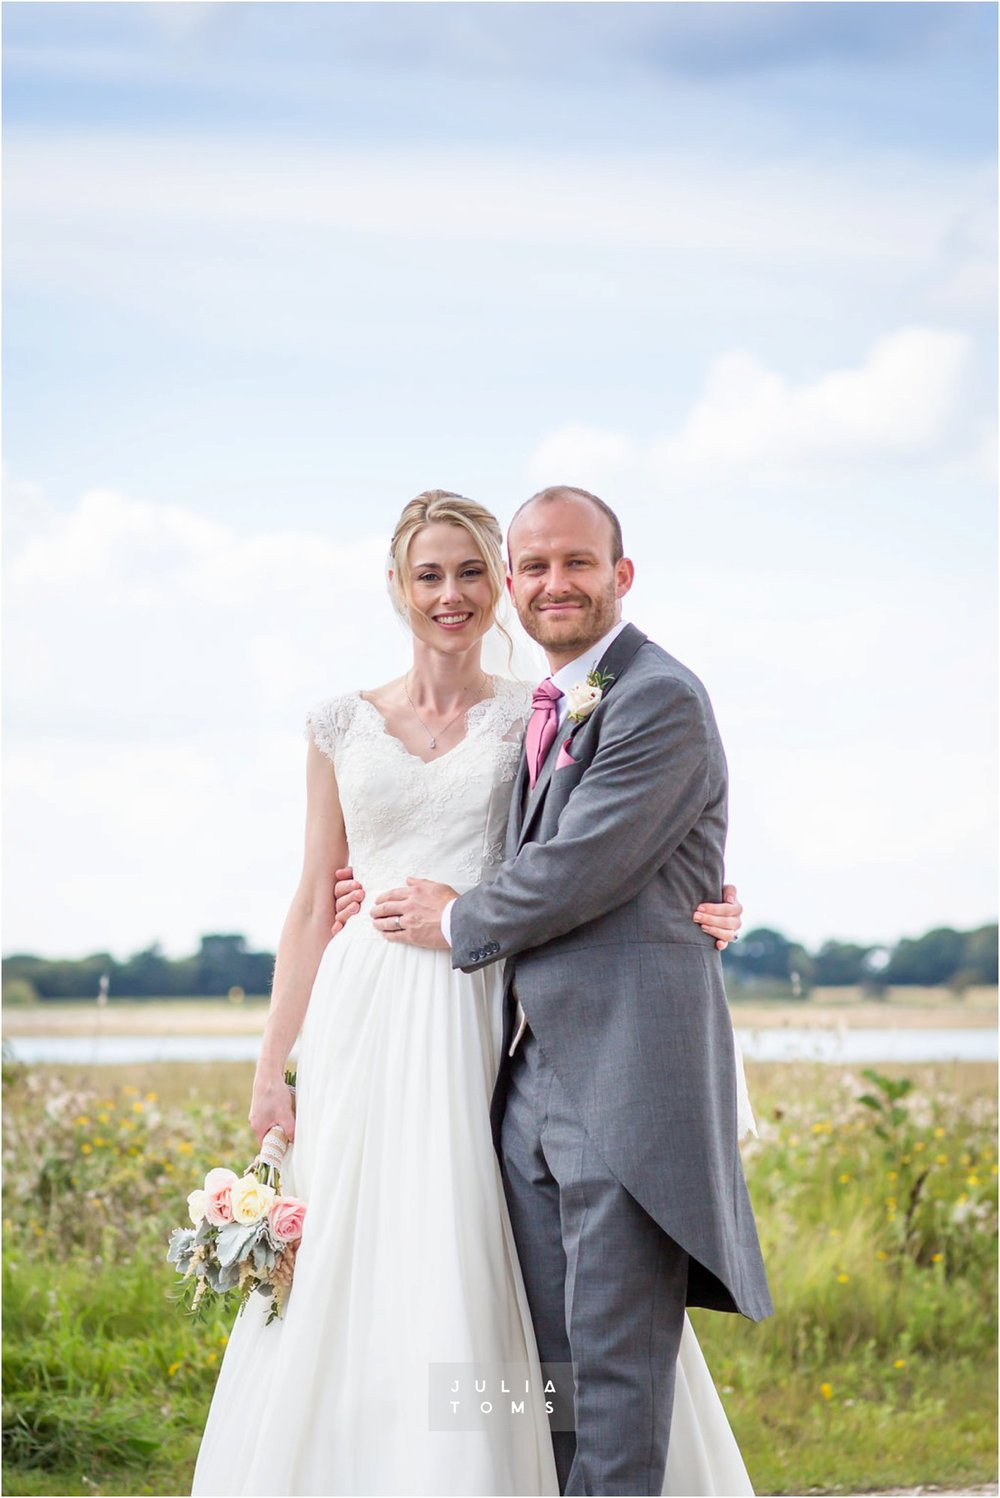 itchenor_wedding_chichester_photographer_045.jpg